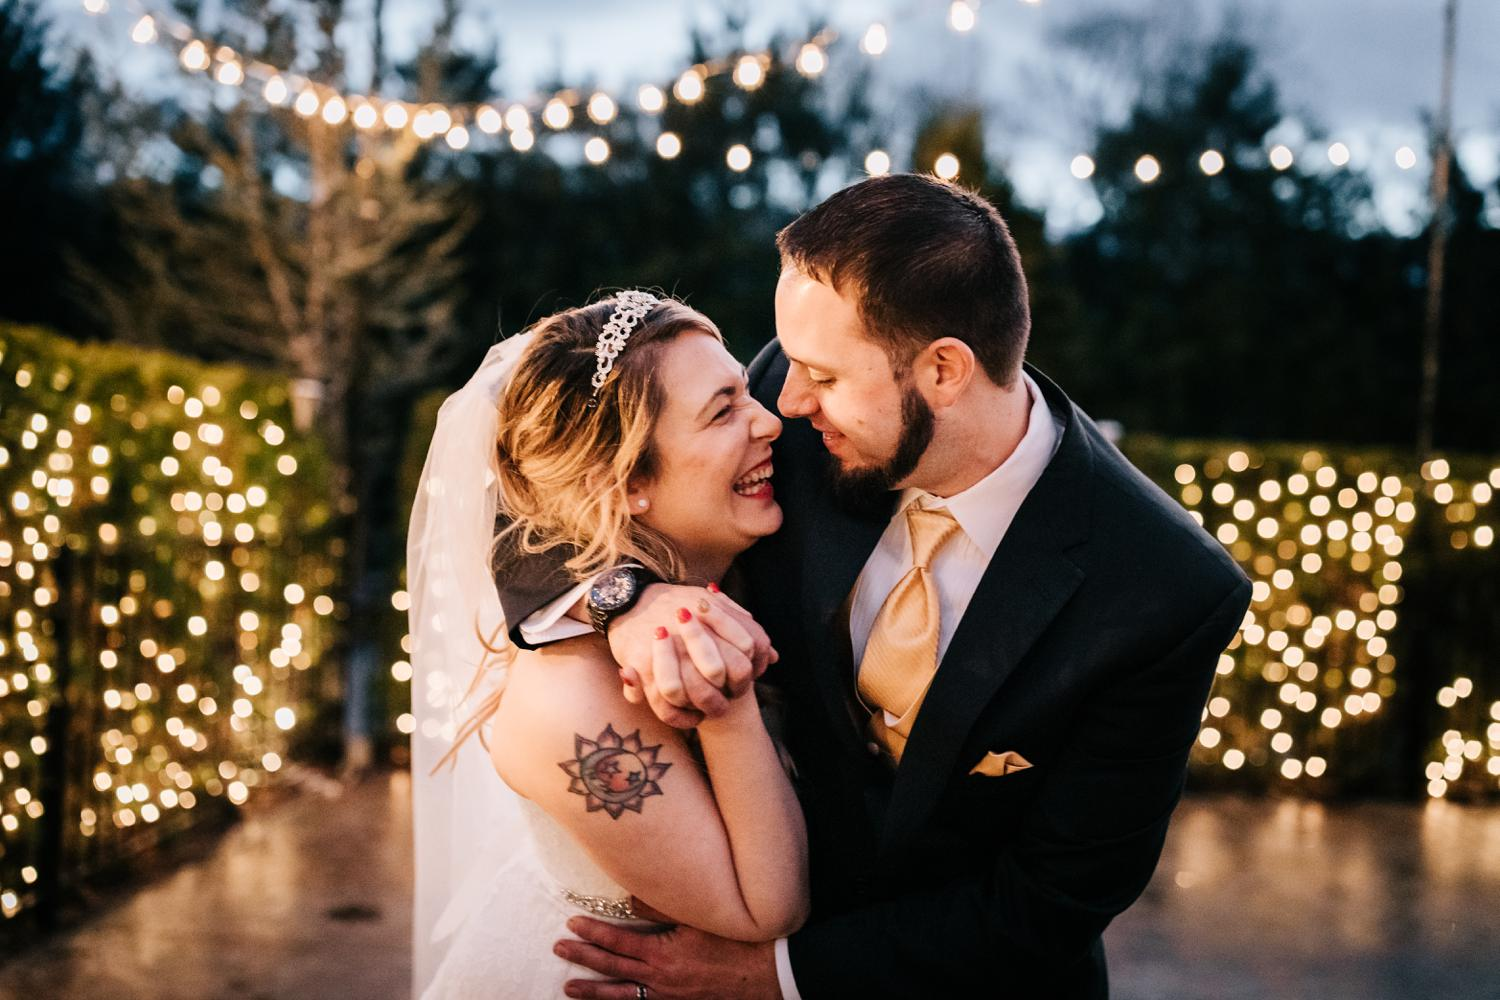 Bride and groom laughing and embracing under christmas lights at night